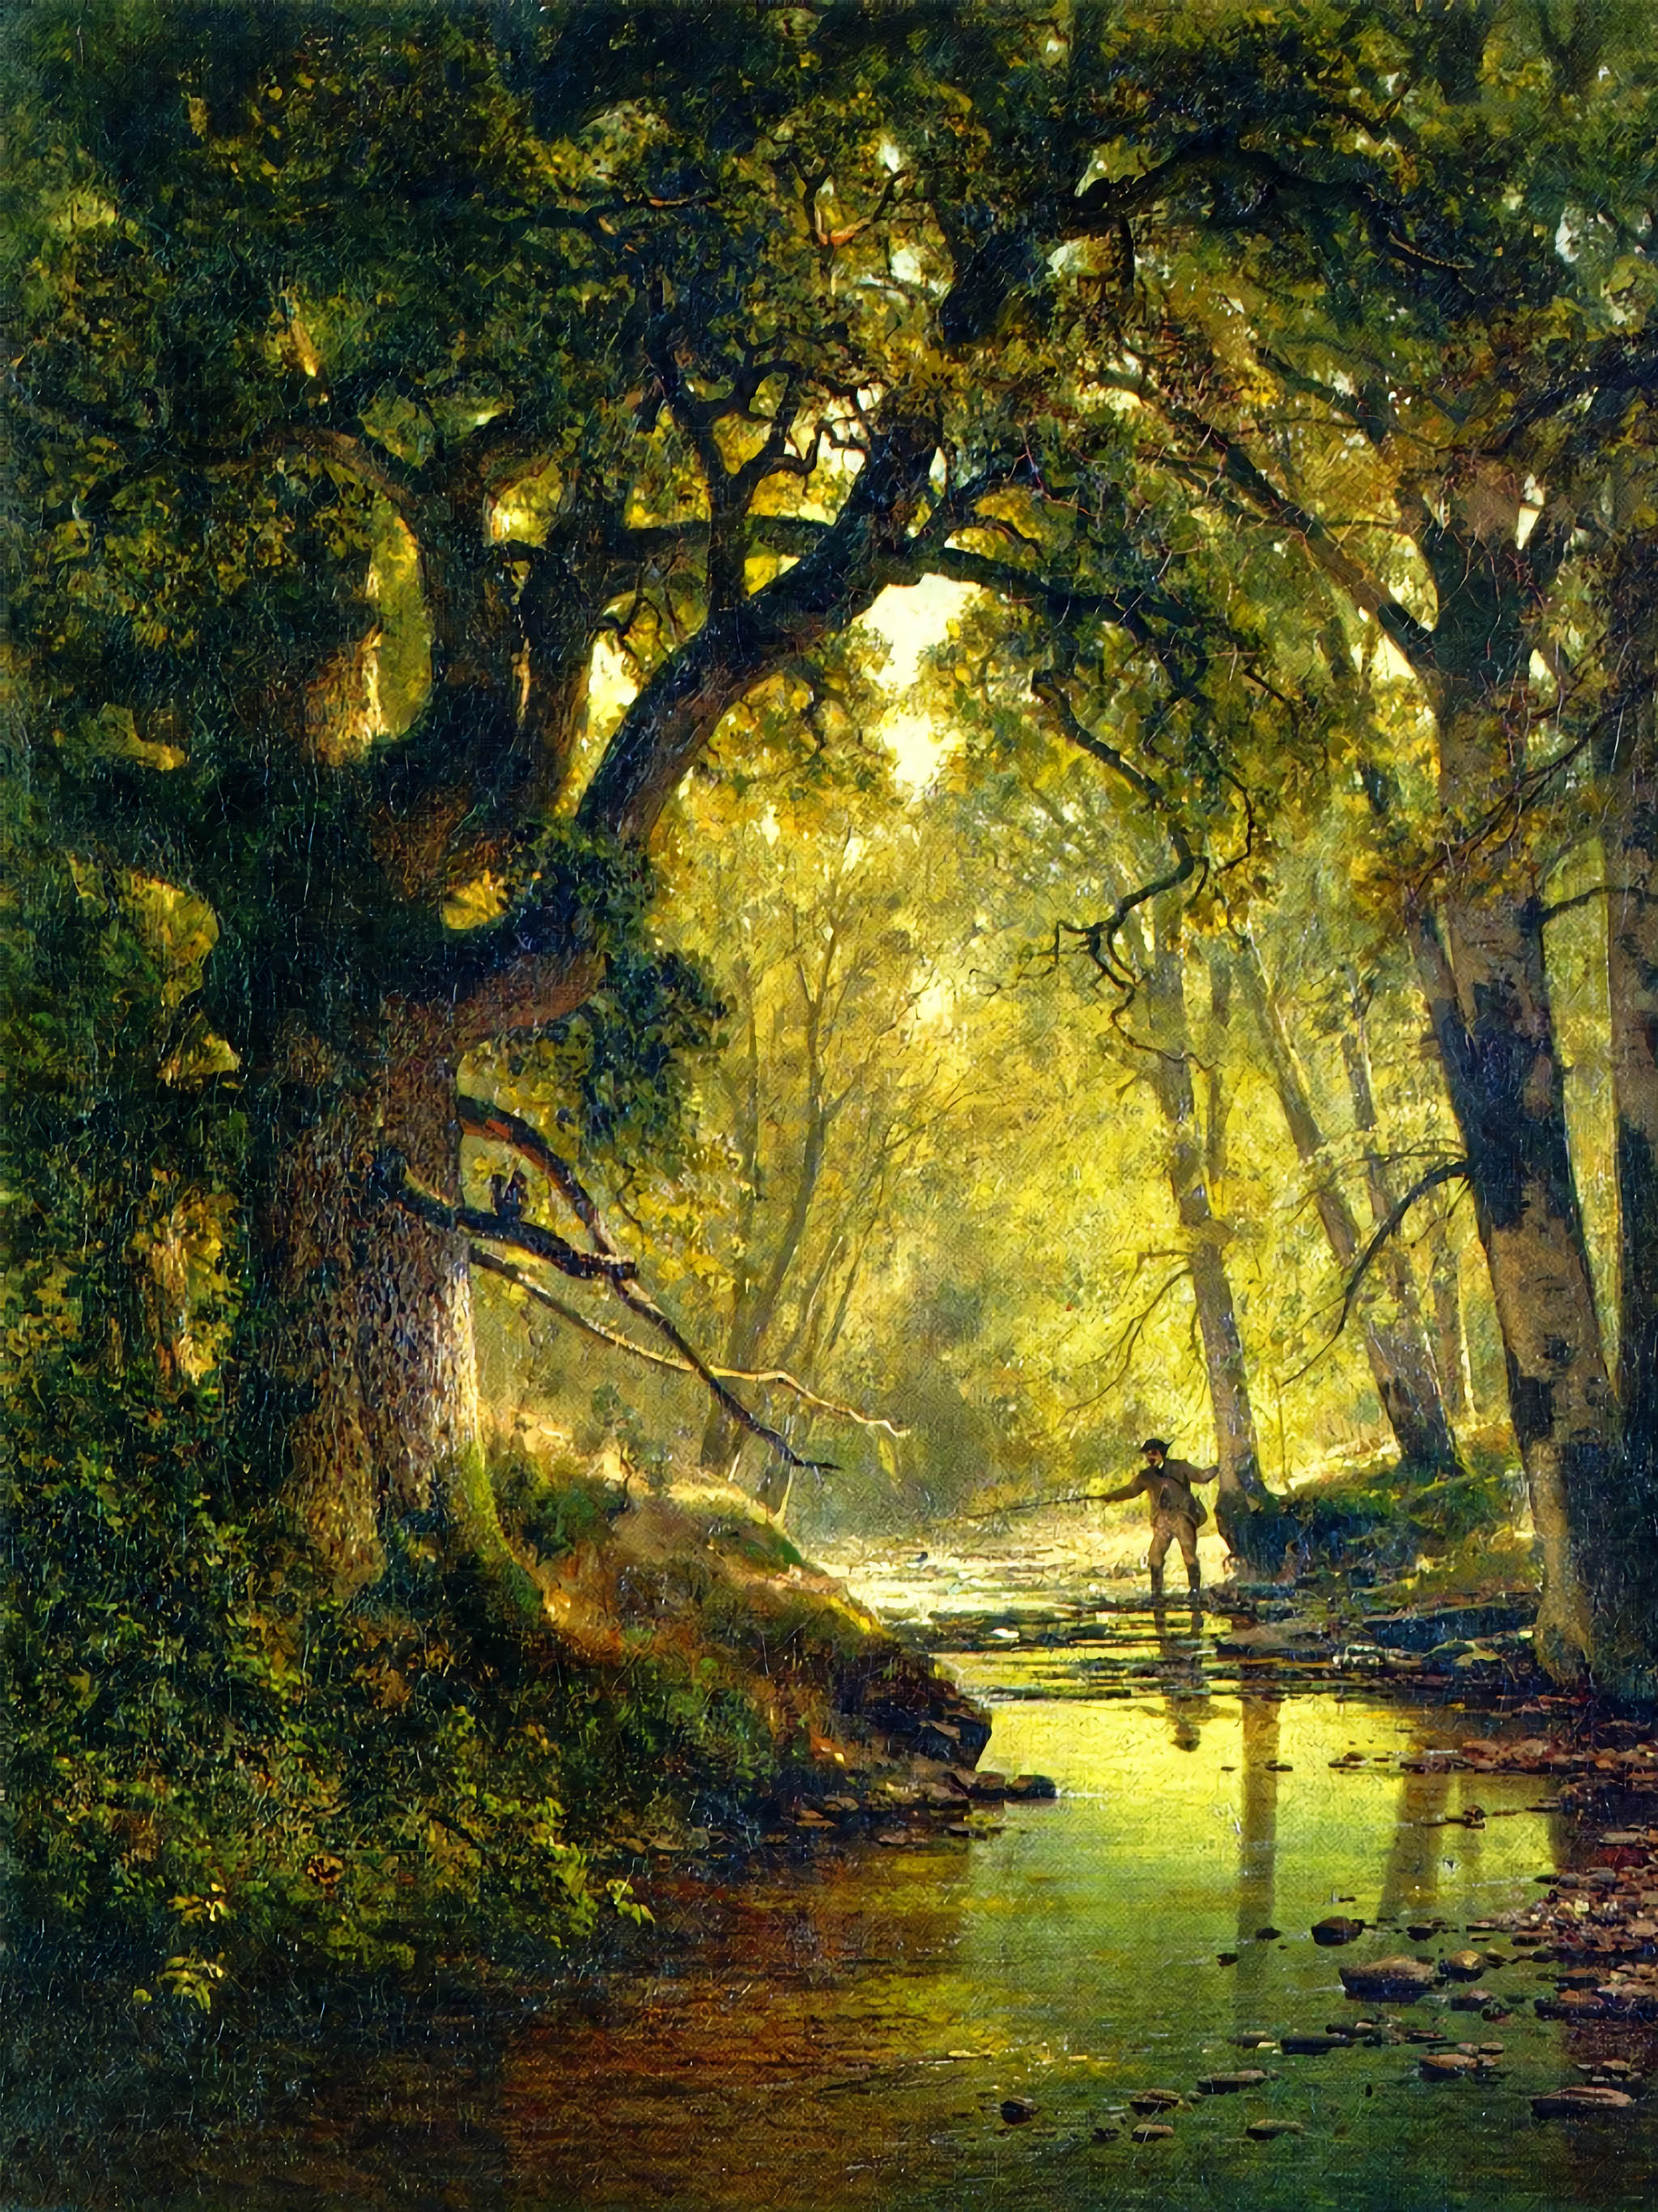 Thomas Hill - Angler in a Forest Interior 2048x2732